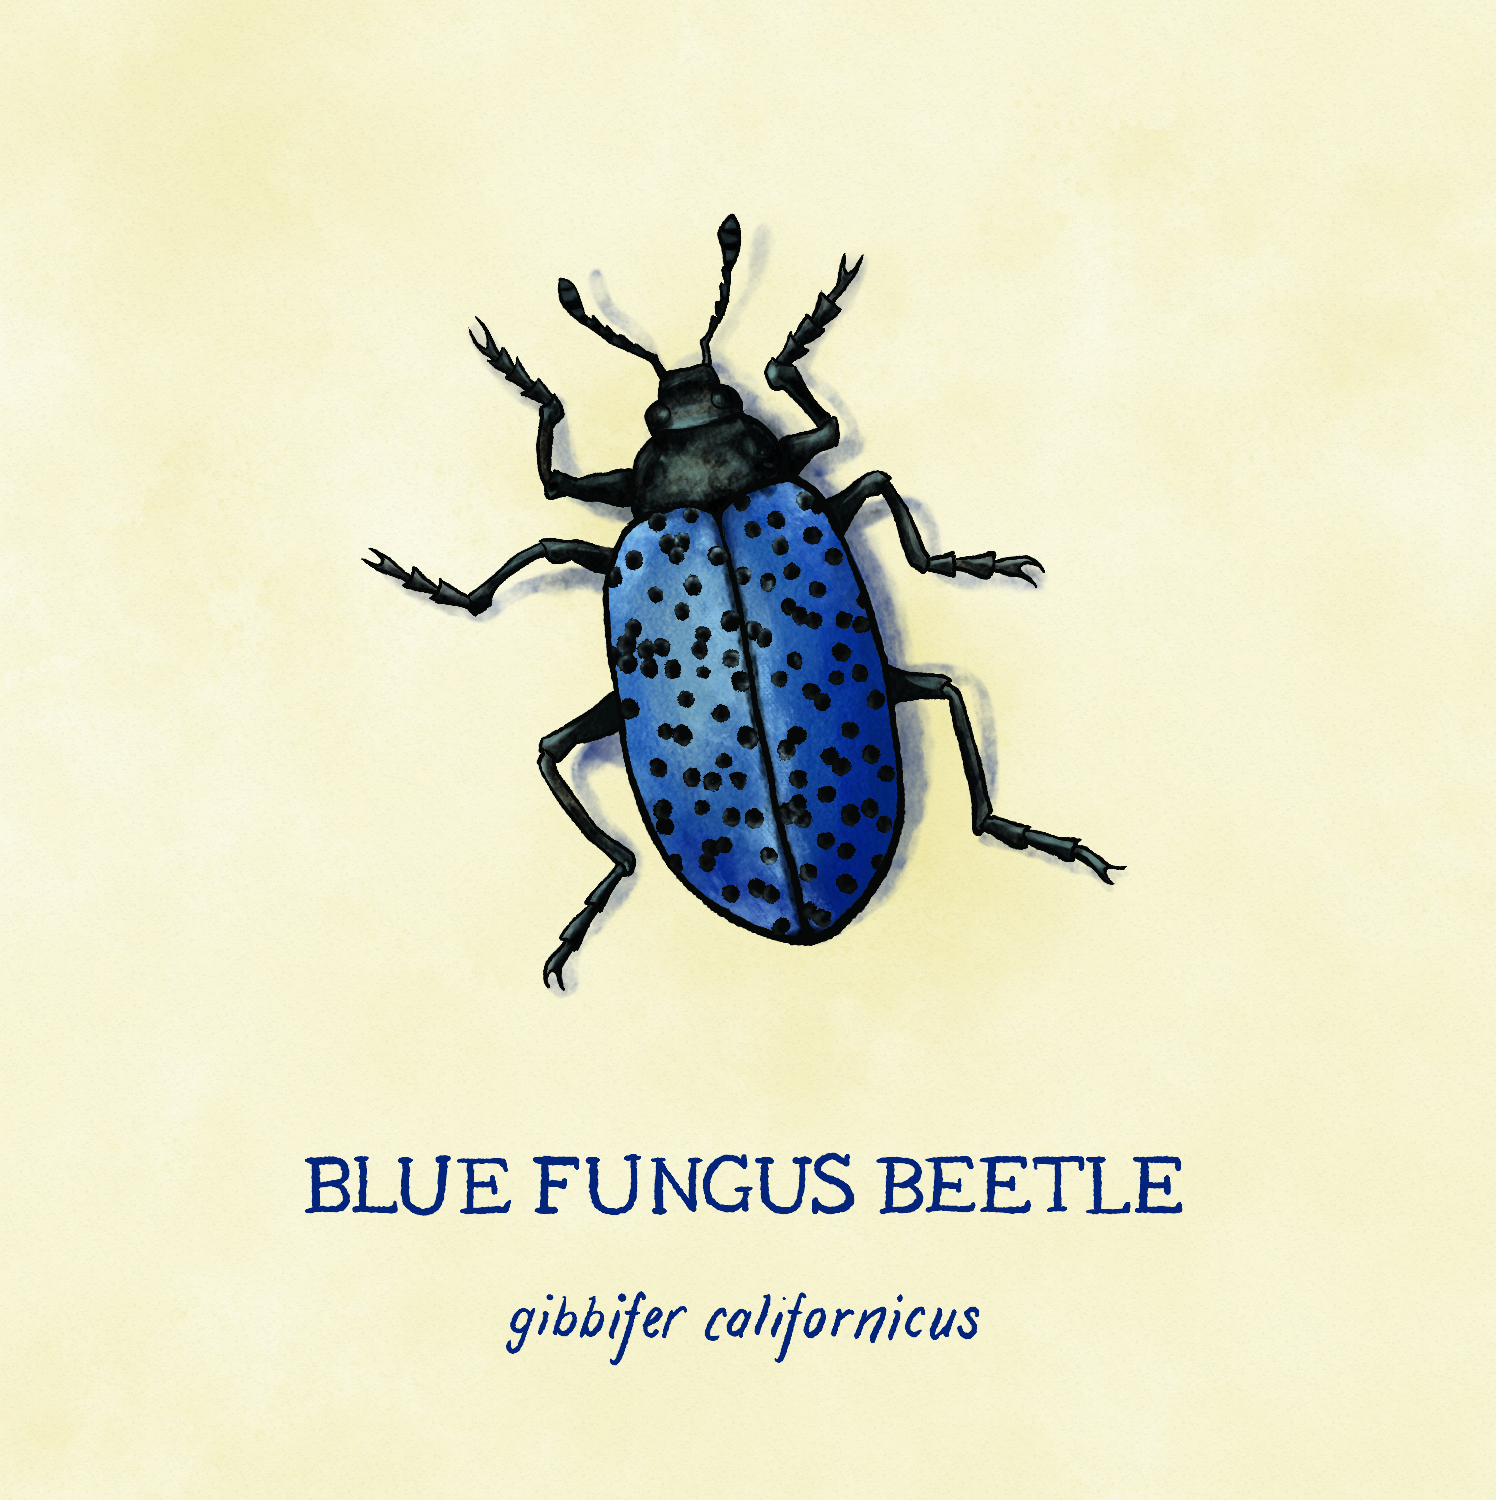 Blue Fungus Beetle close up